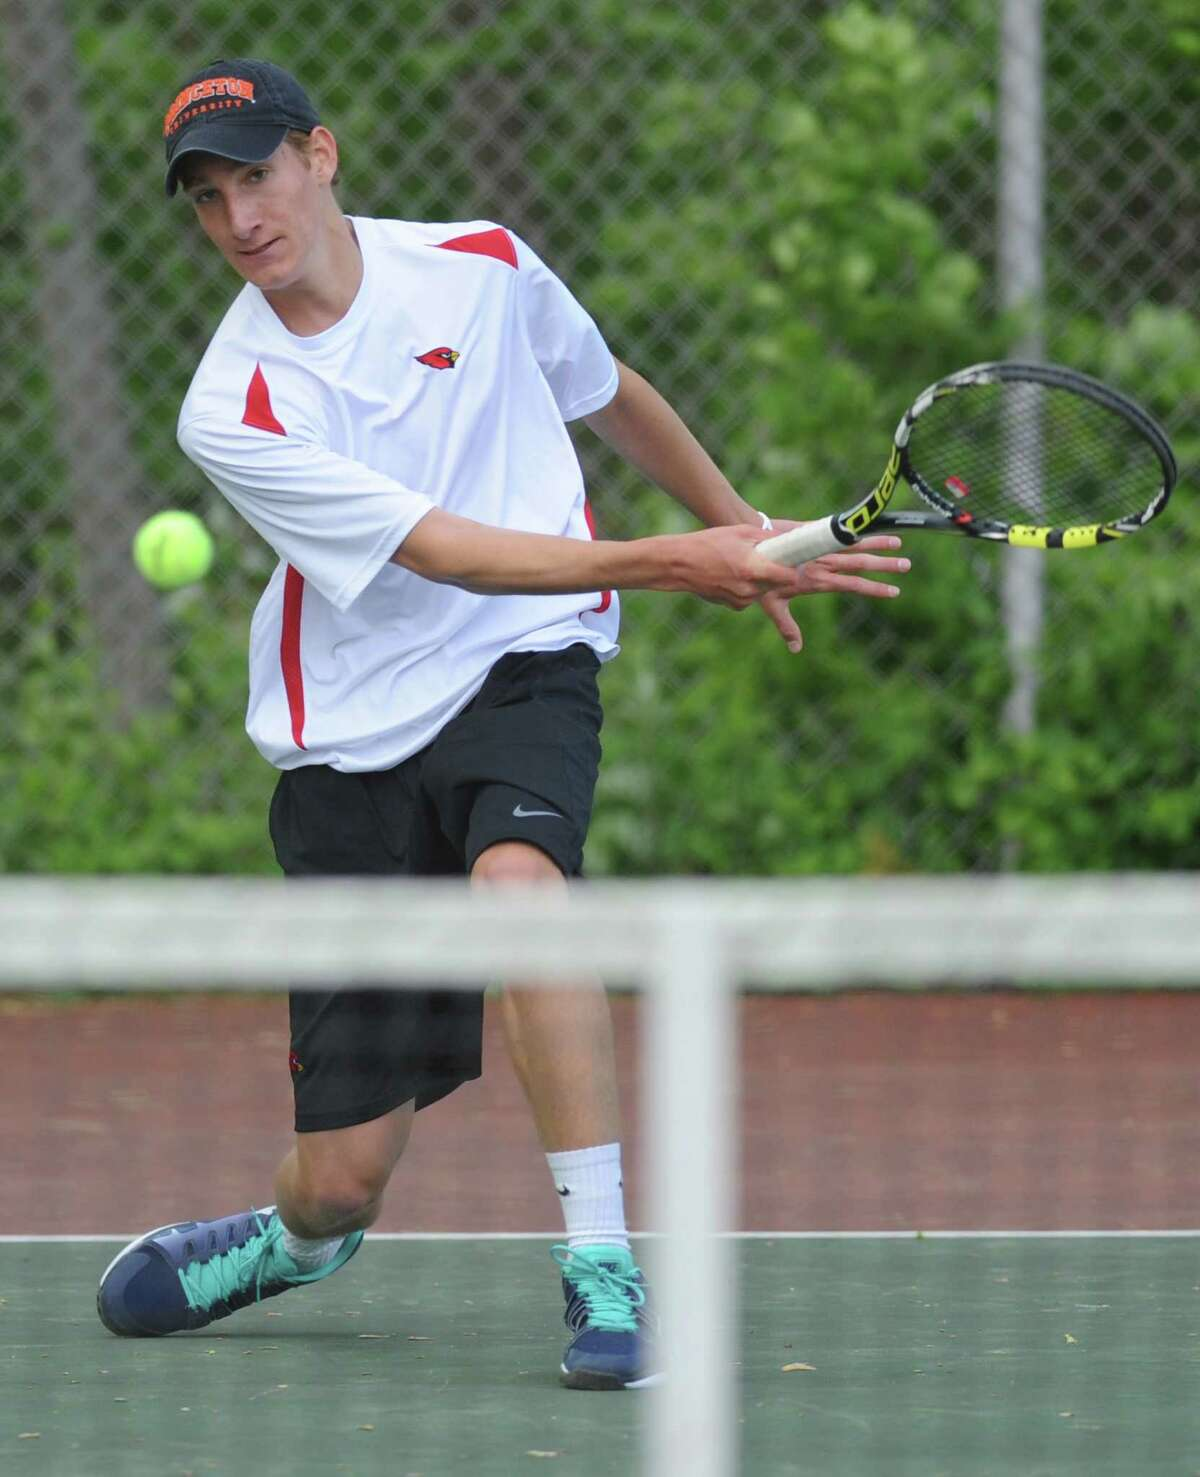 Greenwich's Henry Lewis volleys in his match against Ridgefield's Will Hogan in the high school boys tennis match between Greenwich and Ridgefield at Greenwich High School in Greenwich, Conn. Thursday, May 21, 2015.